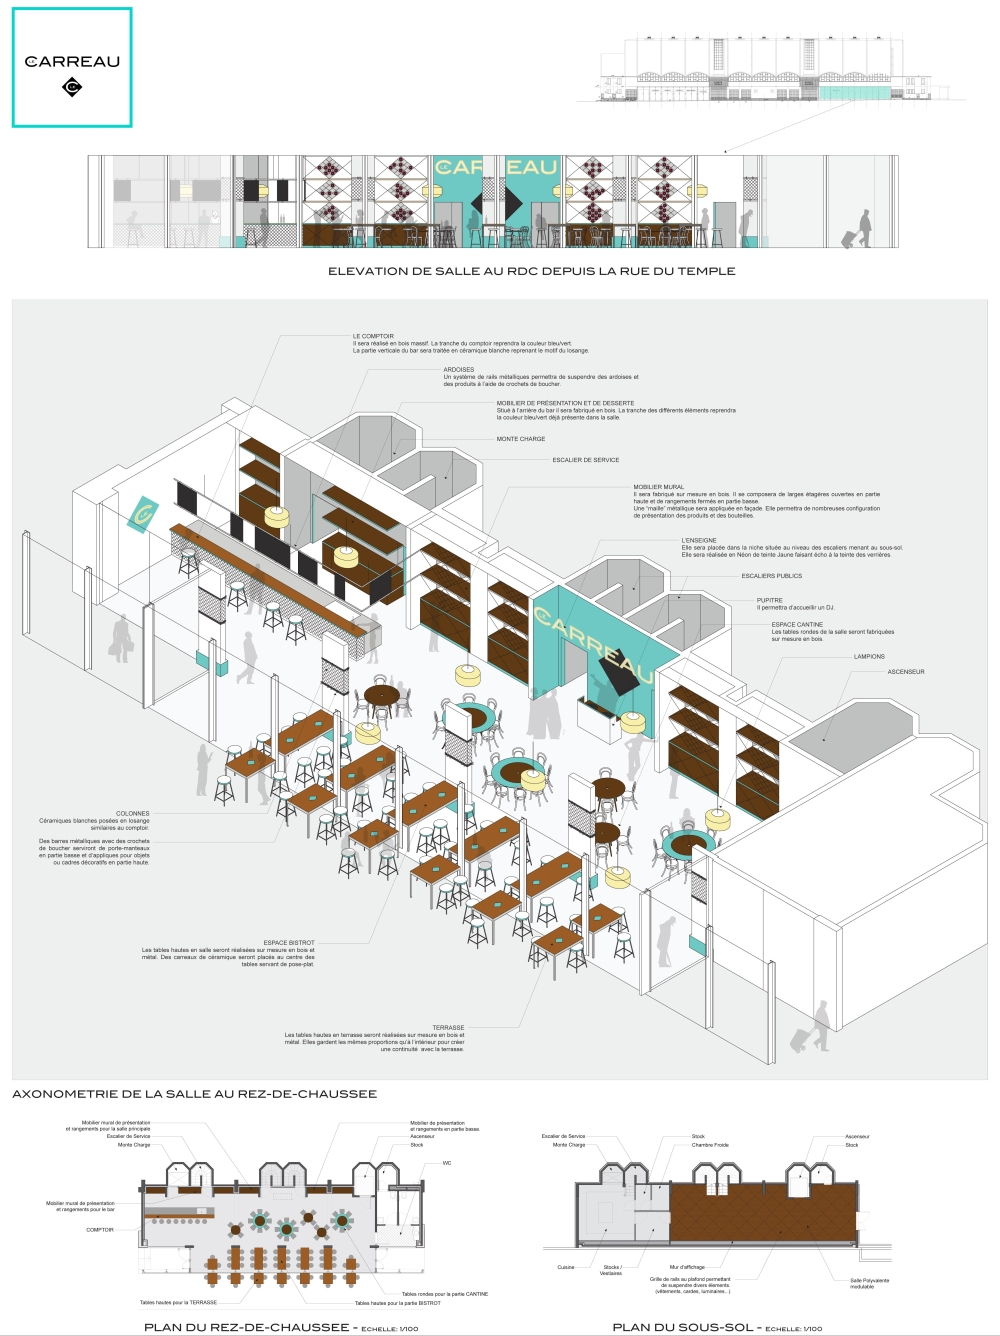 plans-projet-le-carreau-planda-architectes-aout-2012-1-e1537561432588.jpg